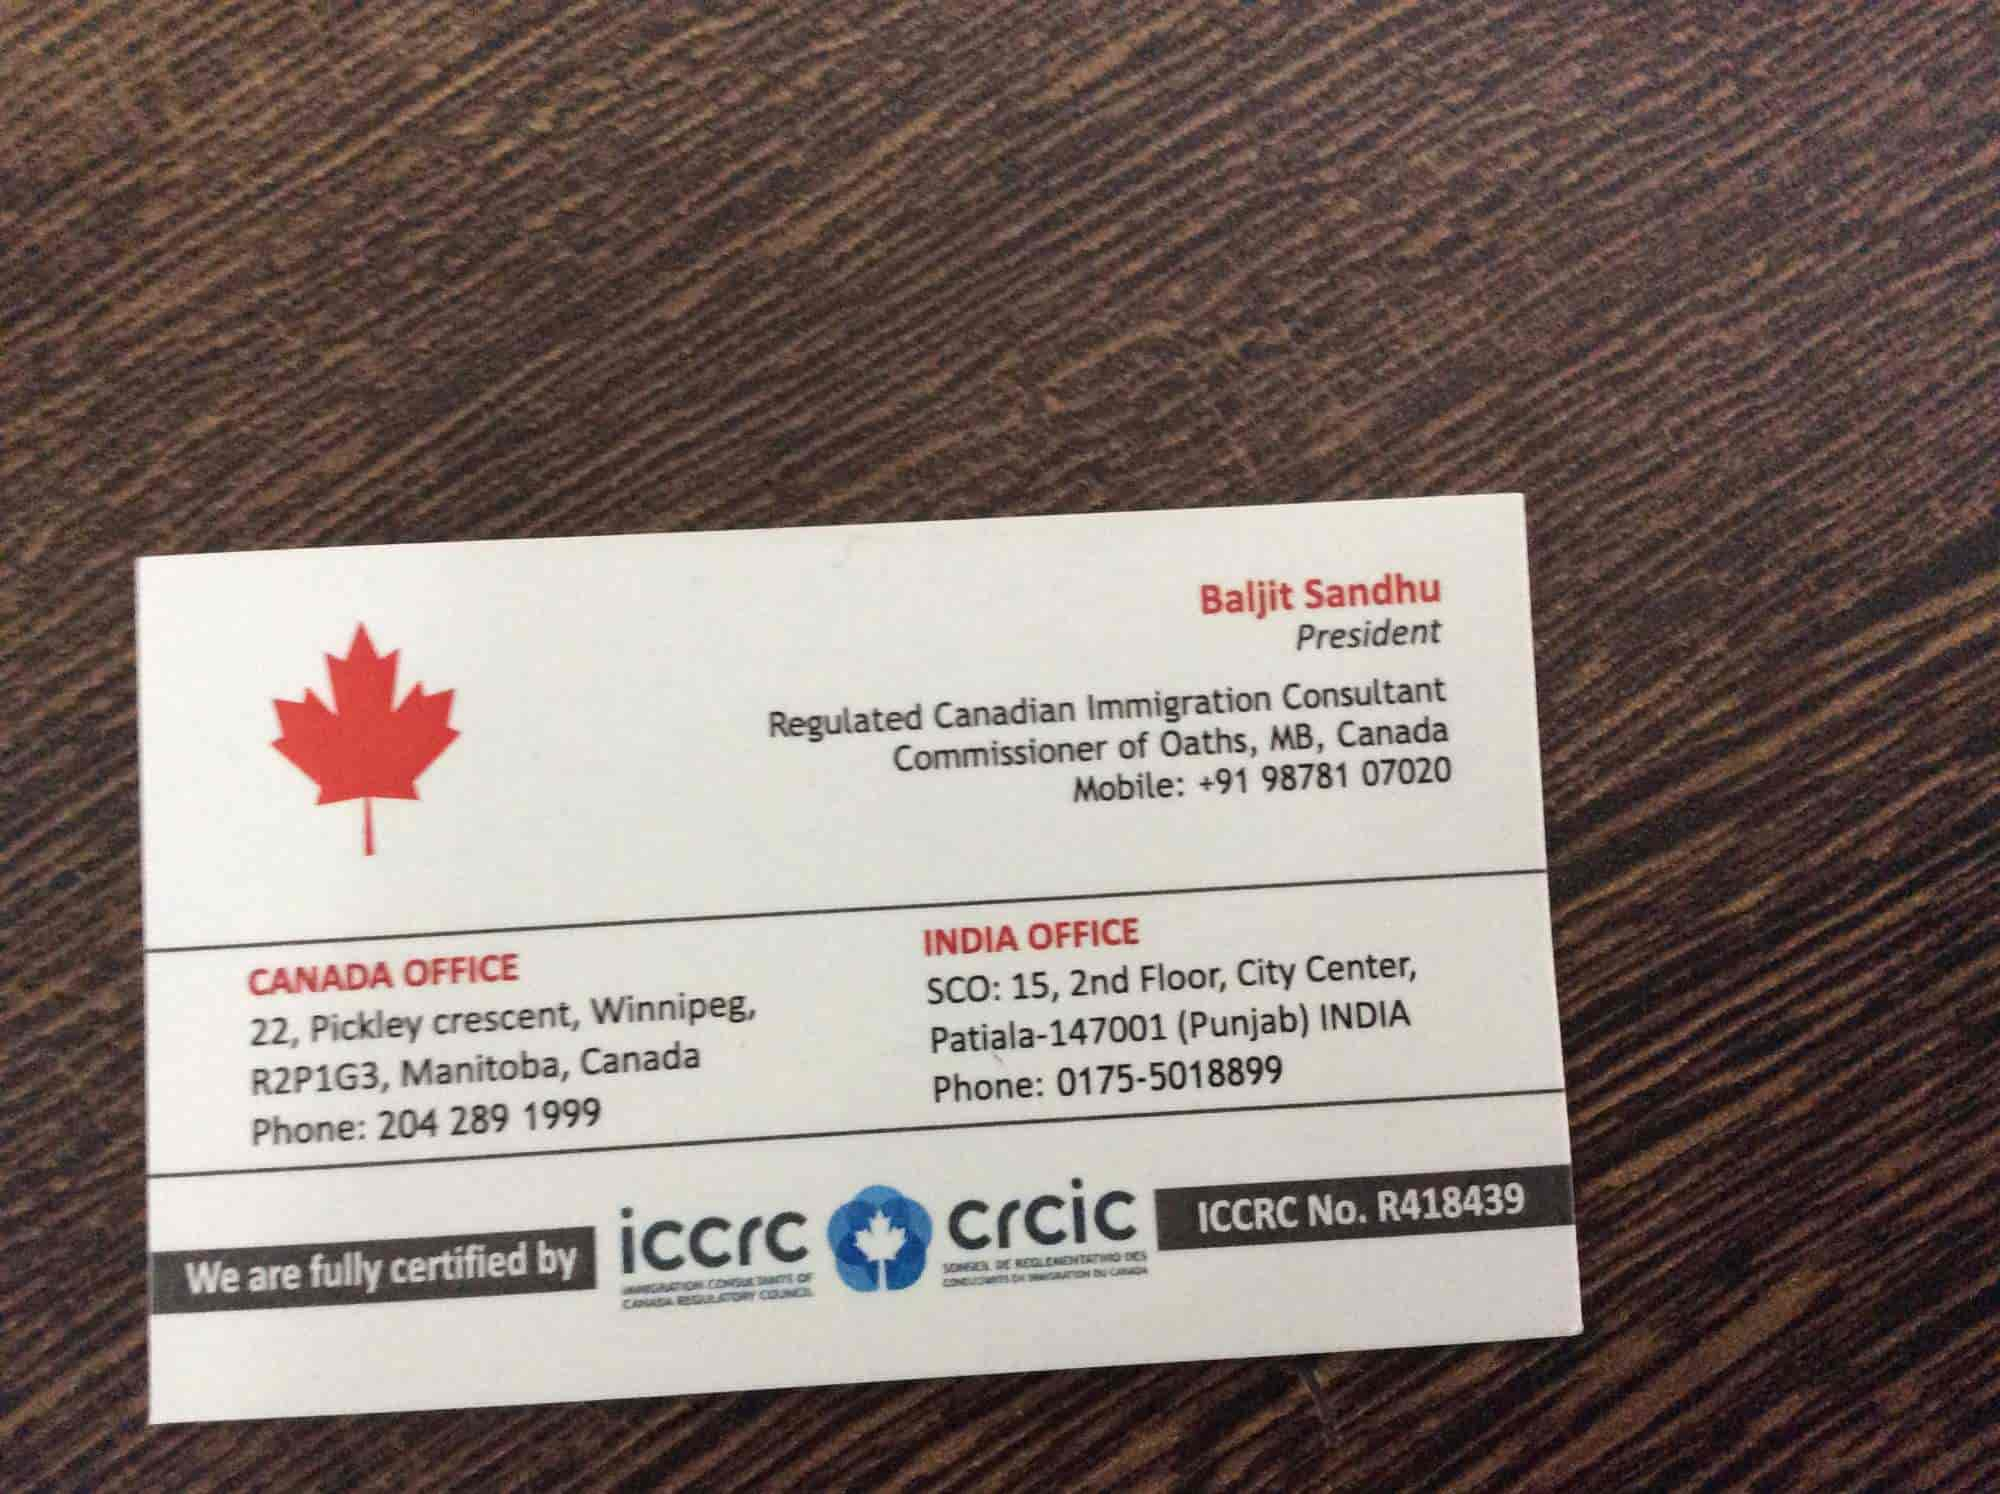 Punjabi immigration consultant in winnipeg